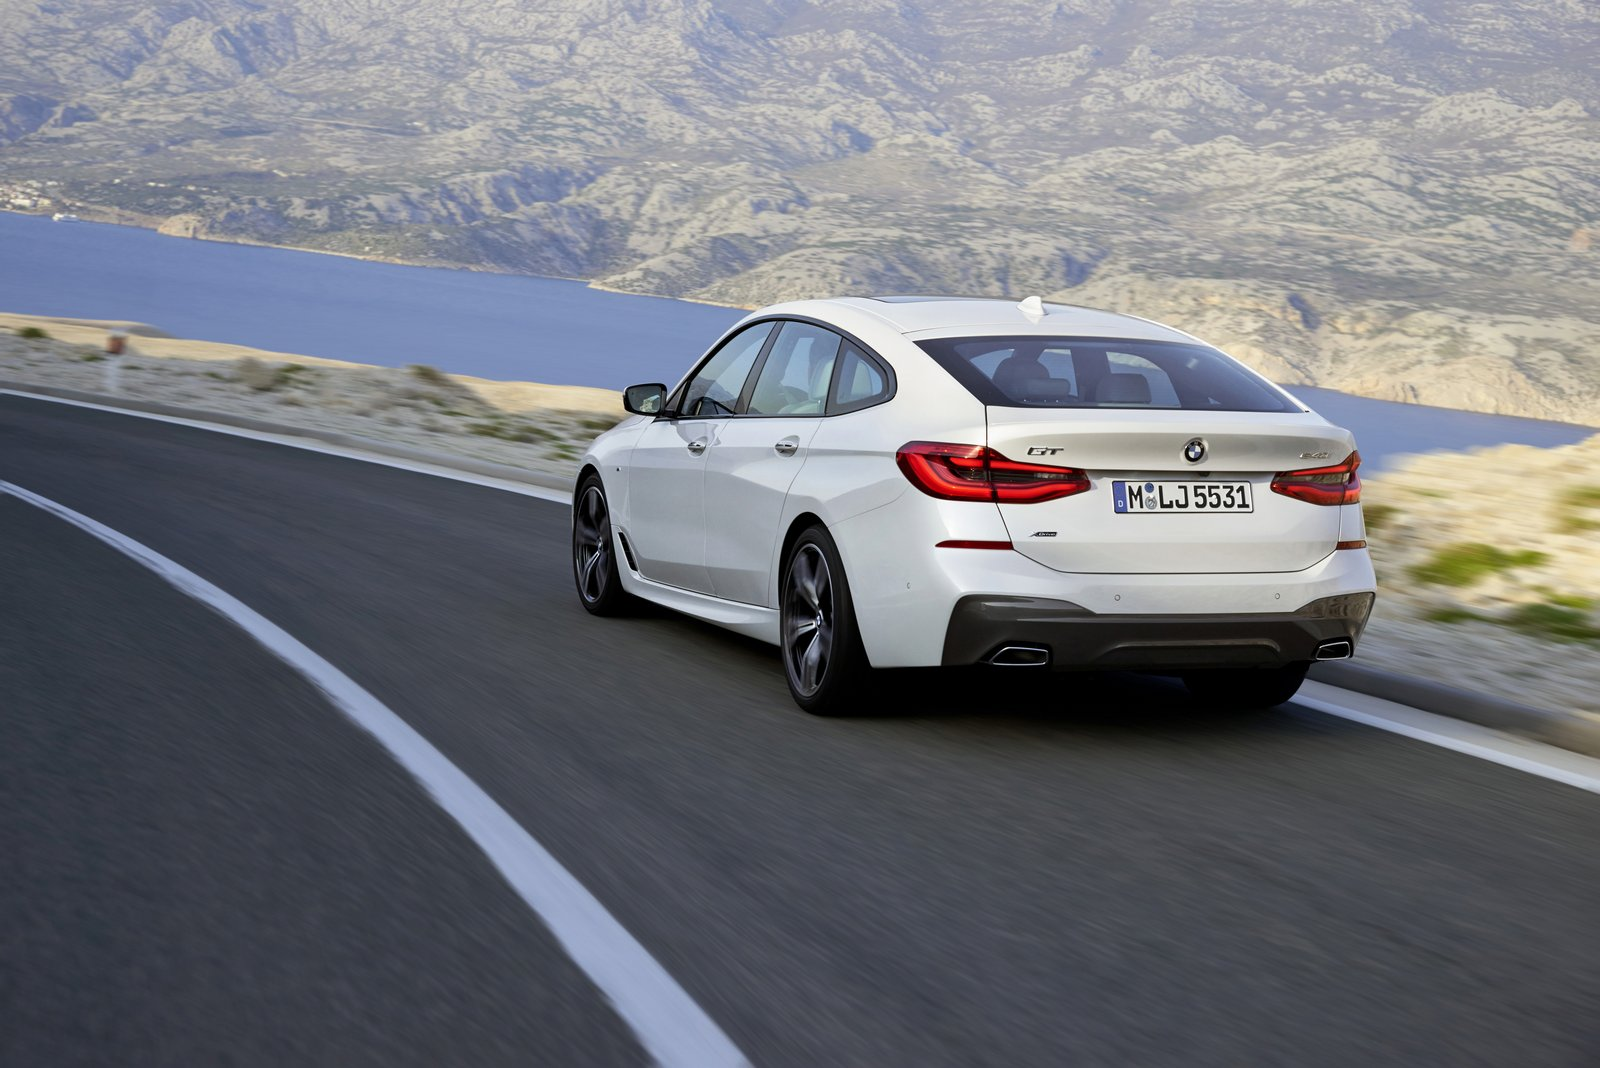 BMW 6 Series Gran Turismo Is Much Better Looking Than the 5